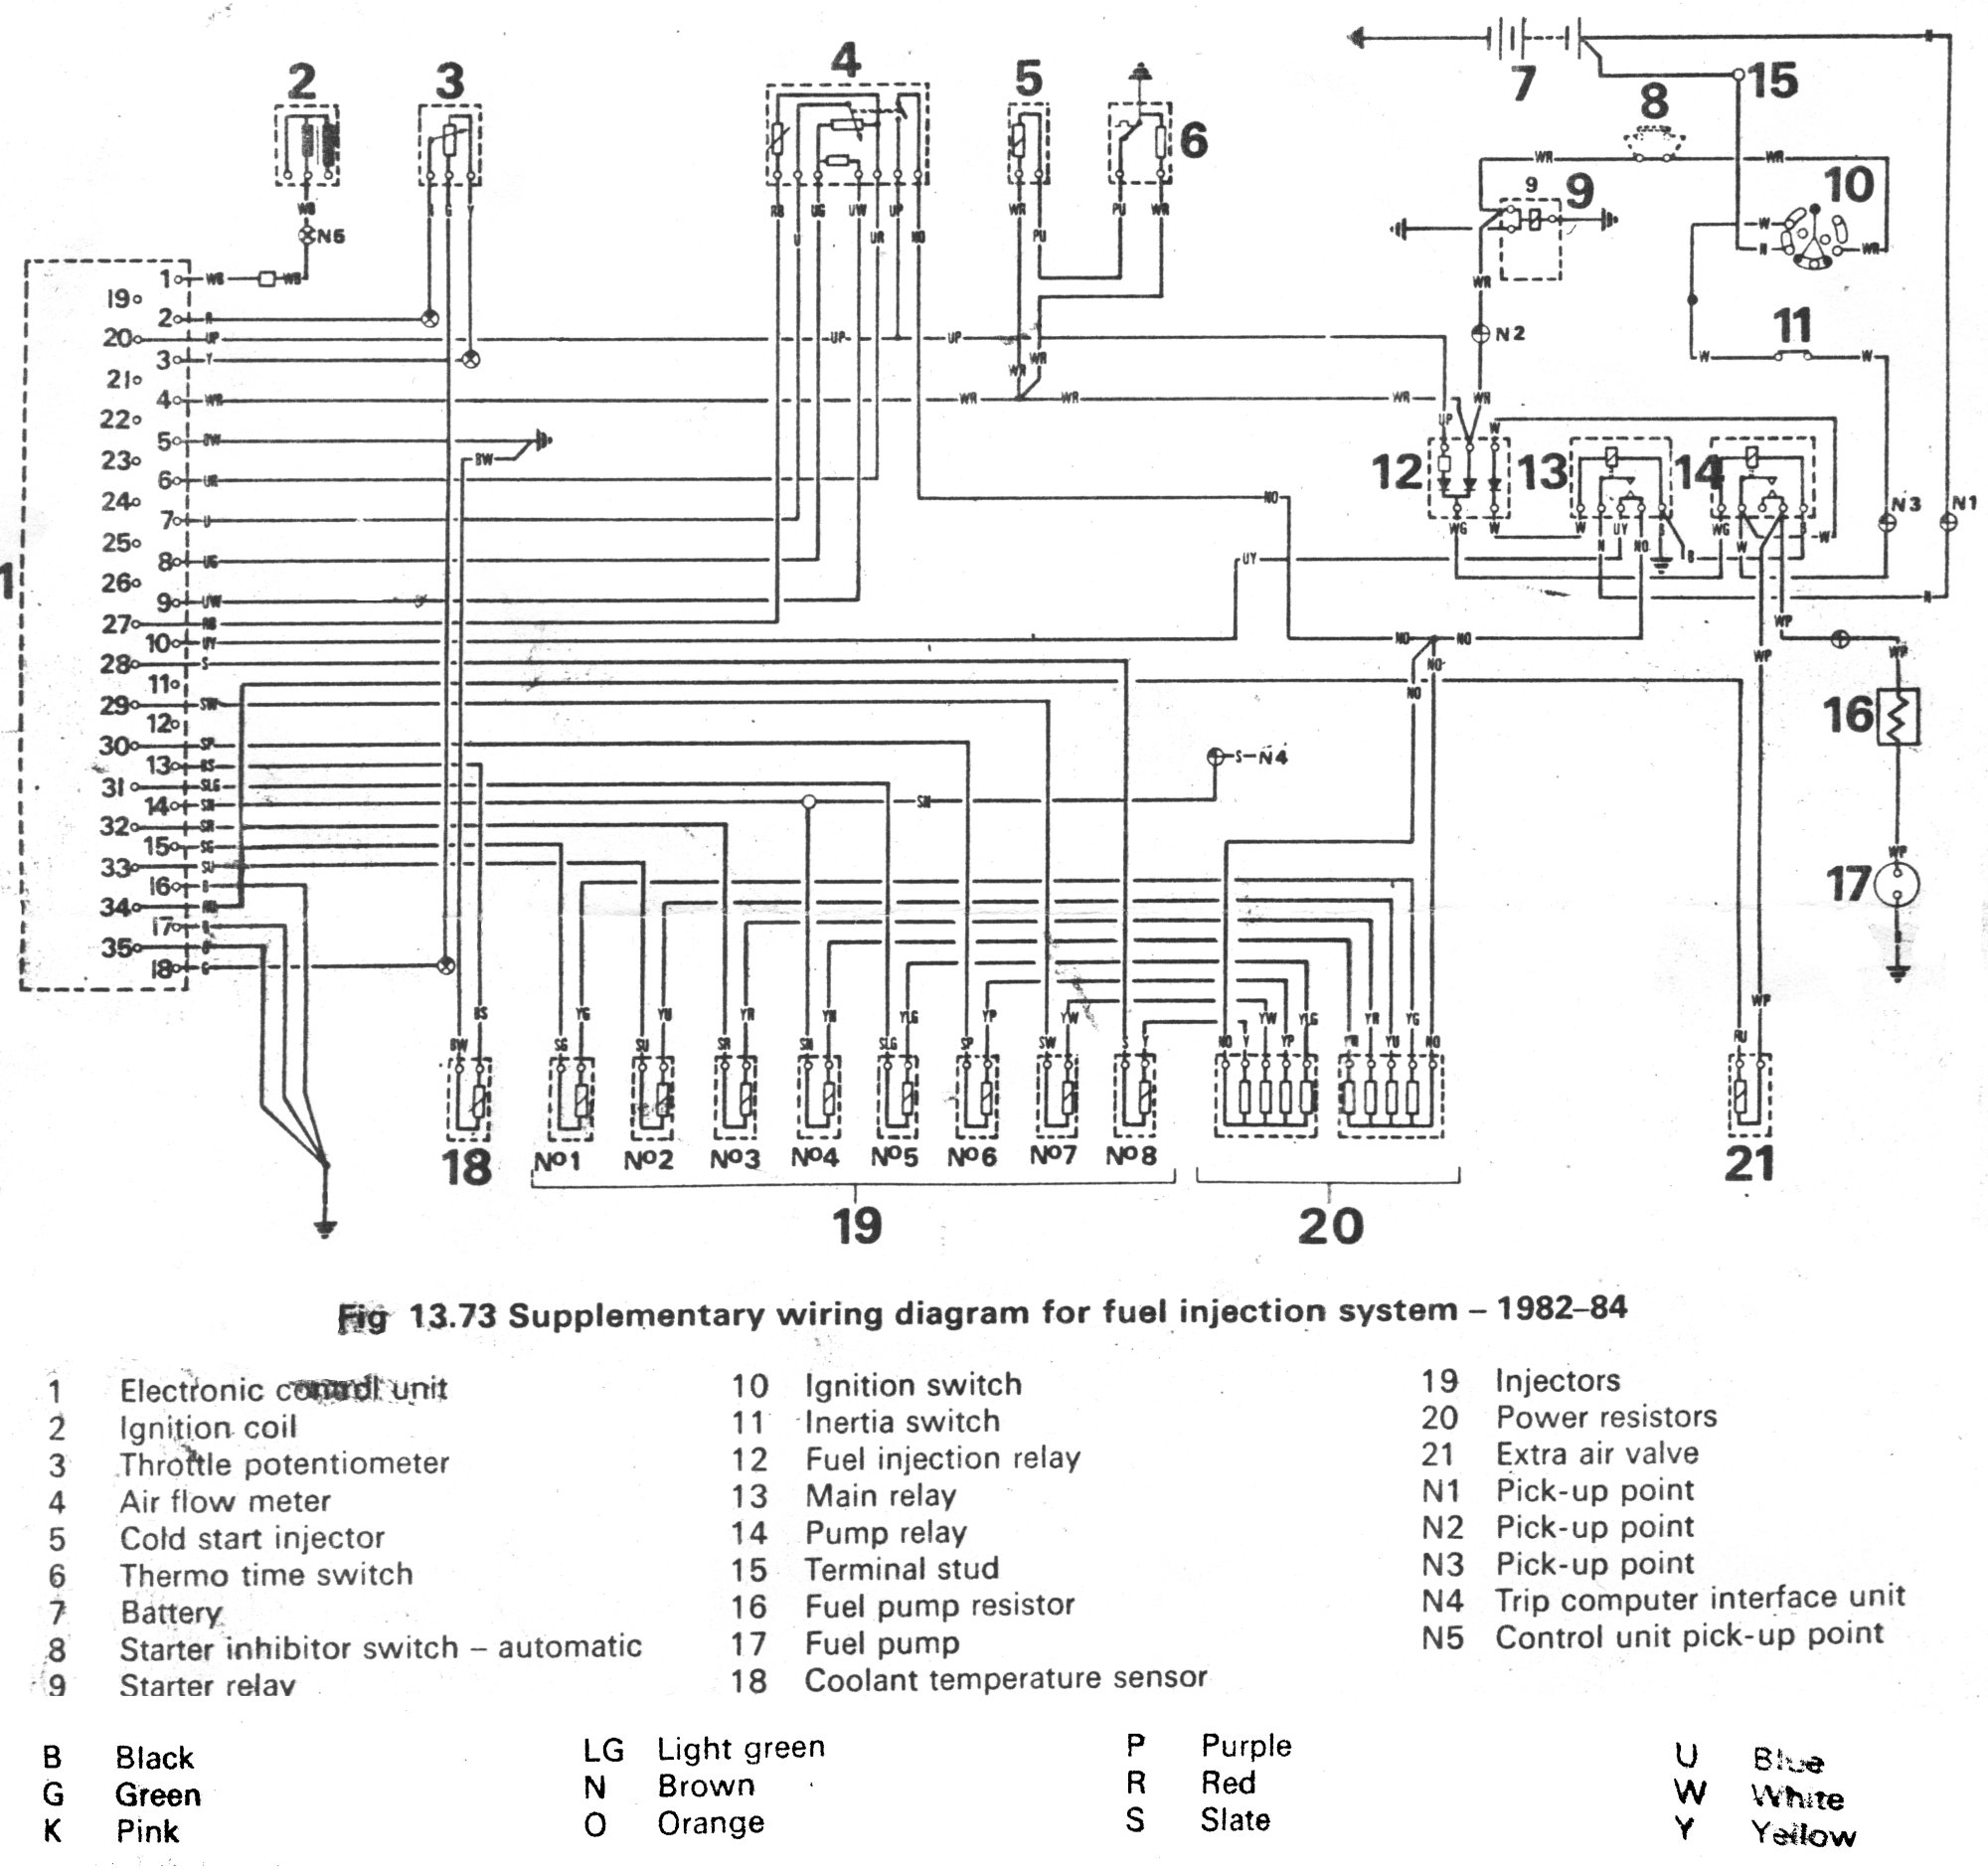 Engine Schematics For 2002 Land Rover - wiring diagram on ... on